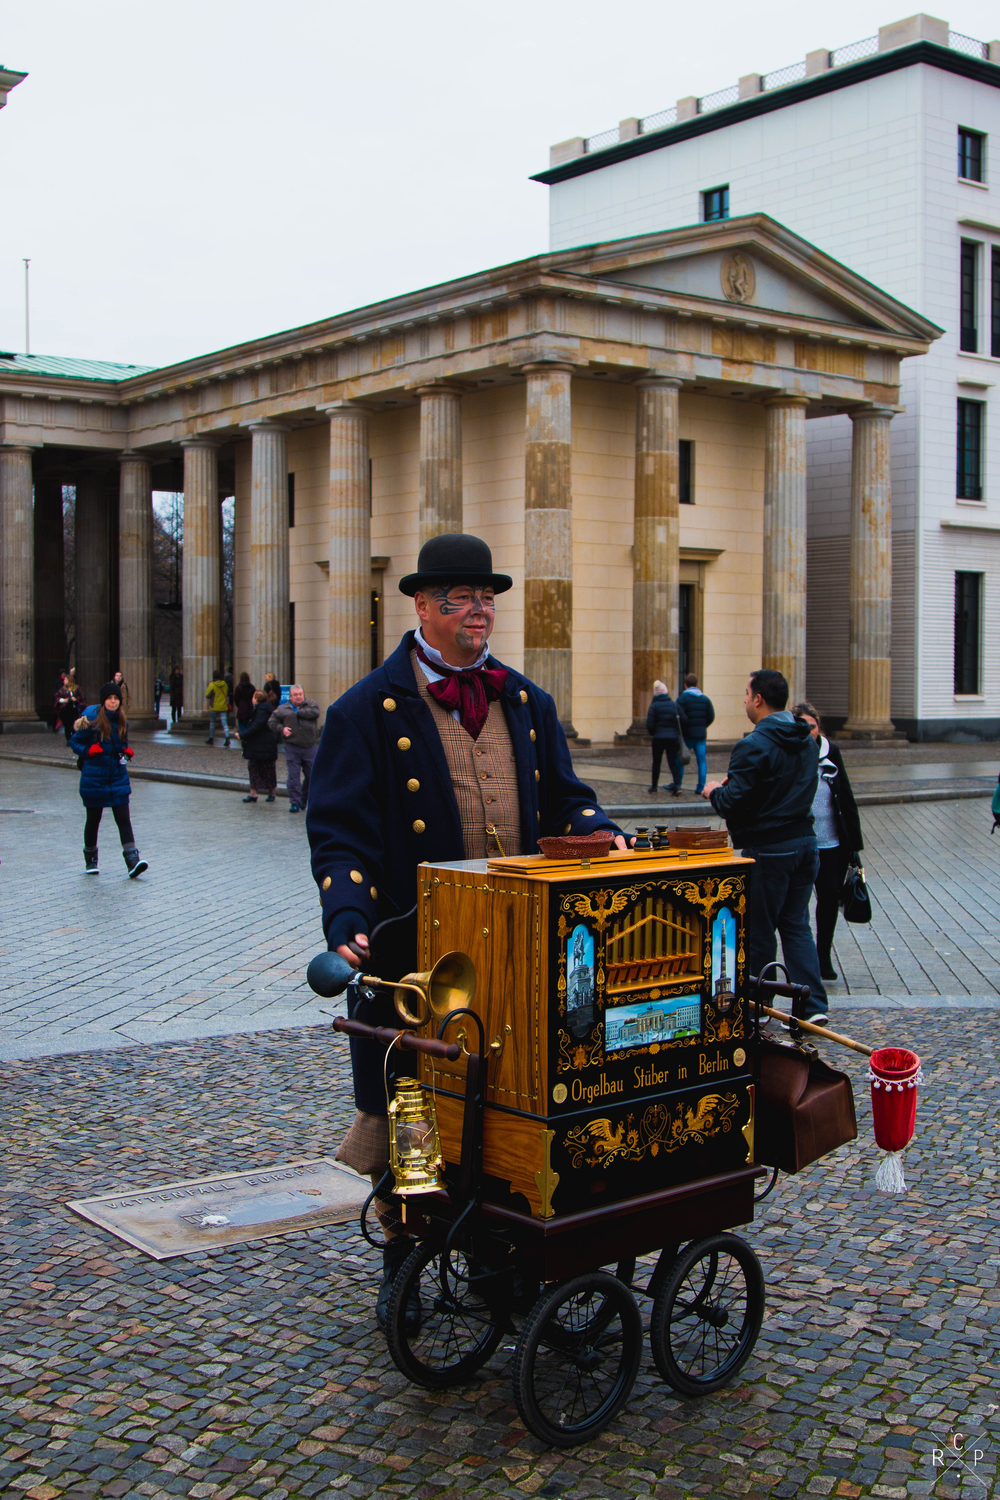 Street Performer 1 - Brandenburg Gate, Berlin, Germany 02/12/2015